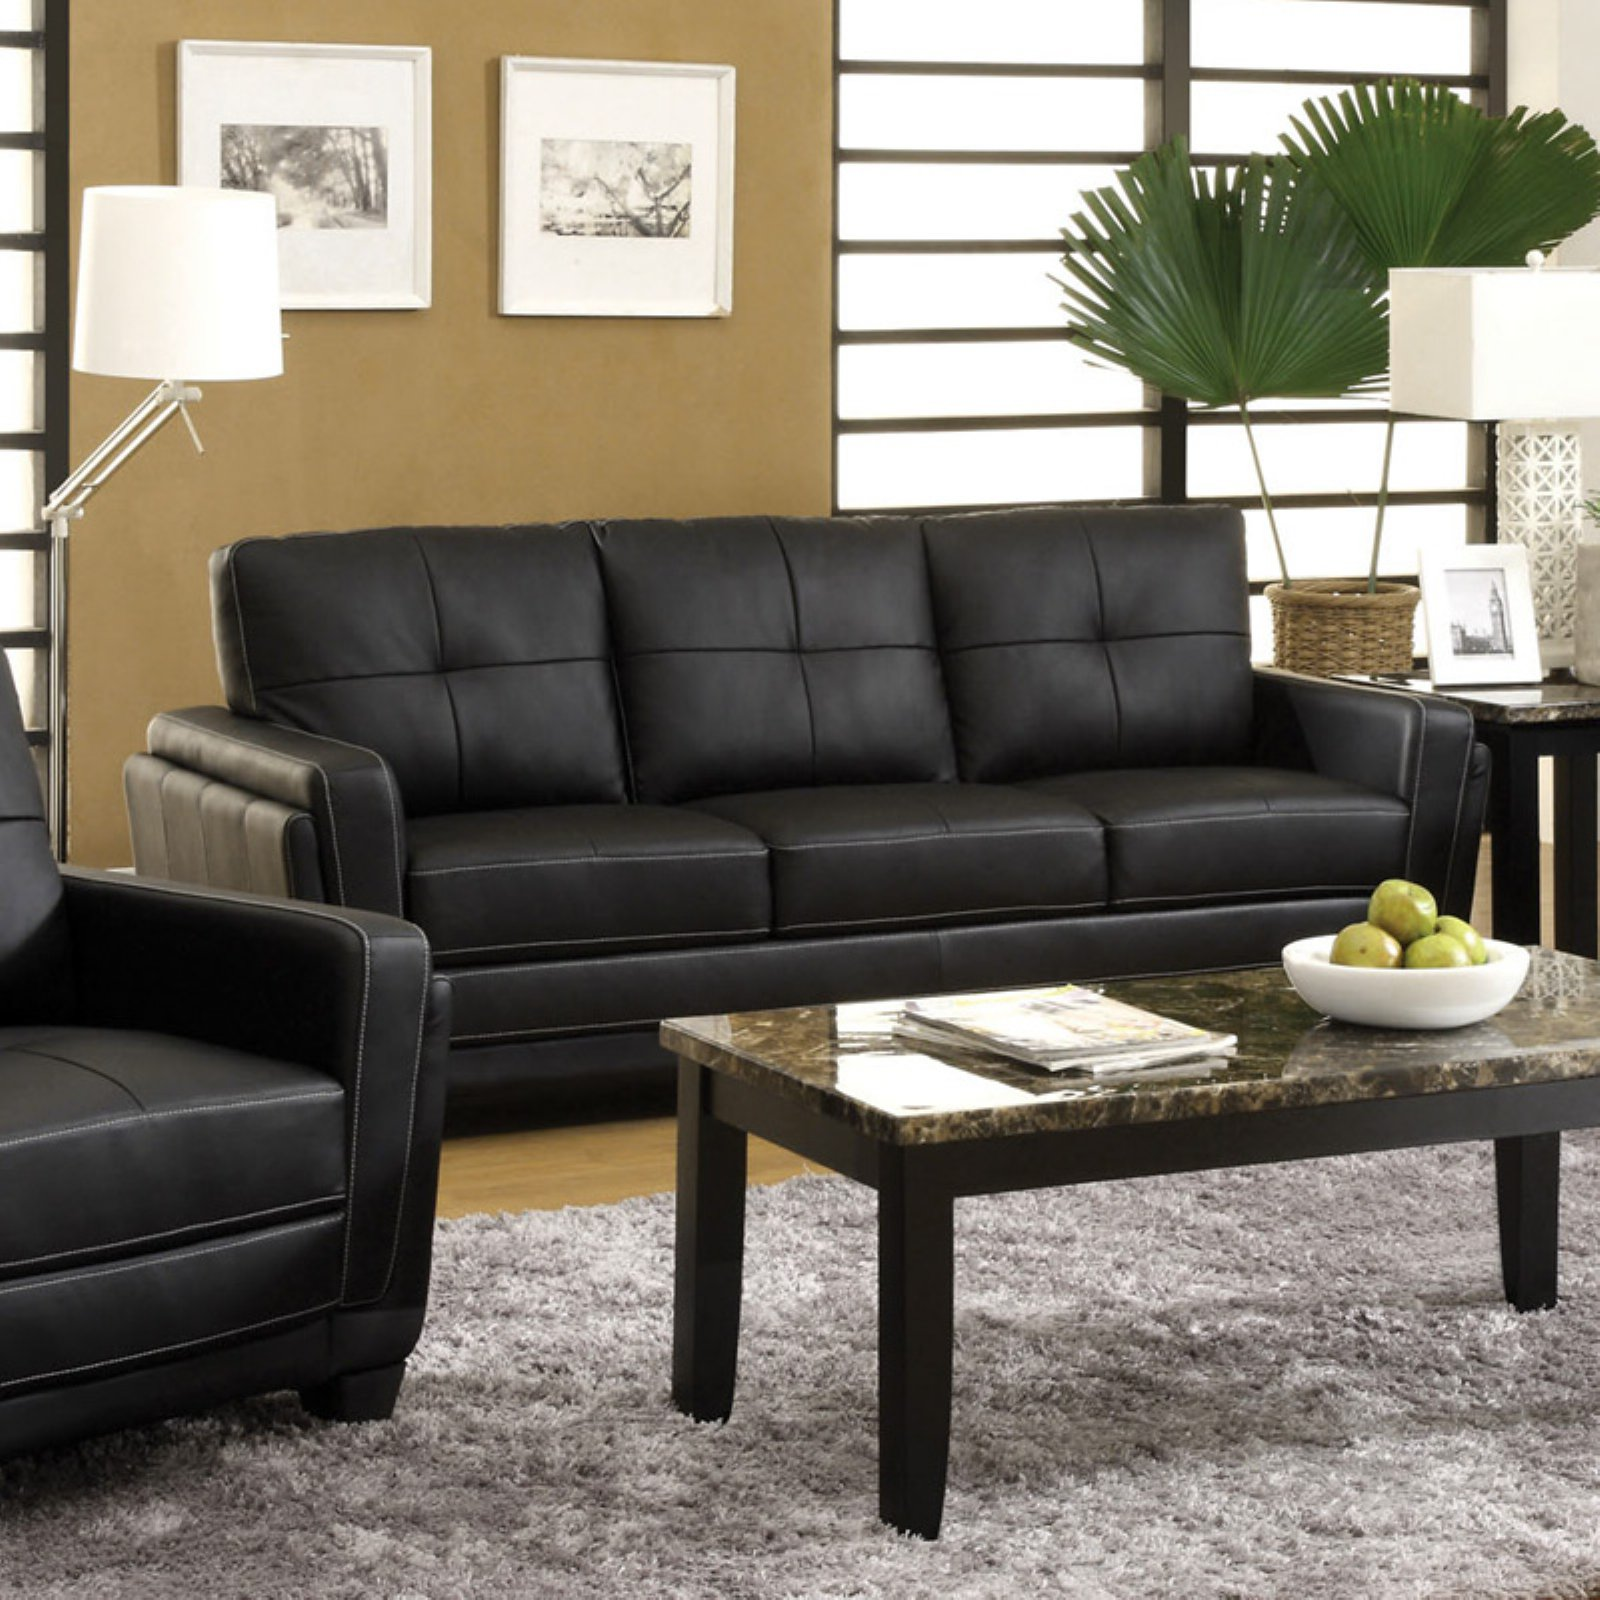 Furniture of America Silverdale Leatherette Sofa - Black